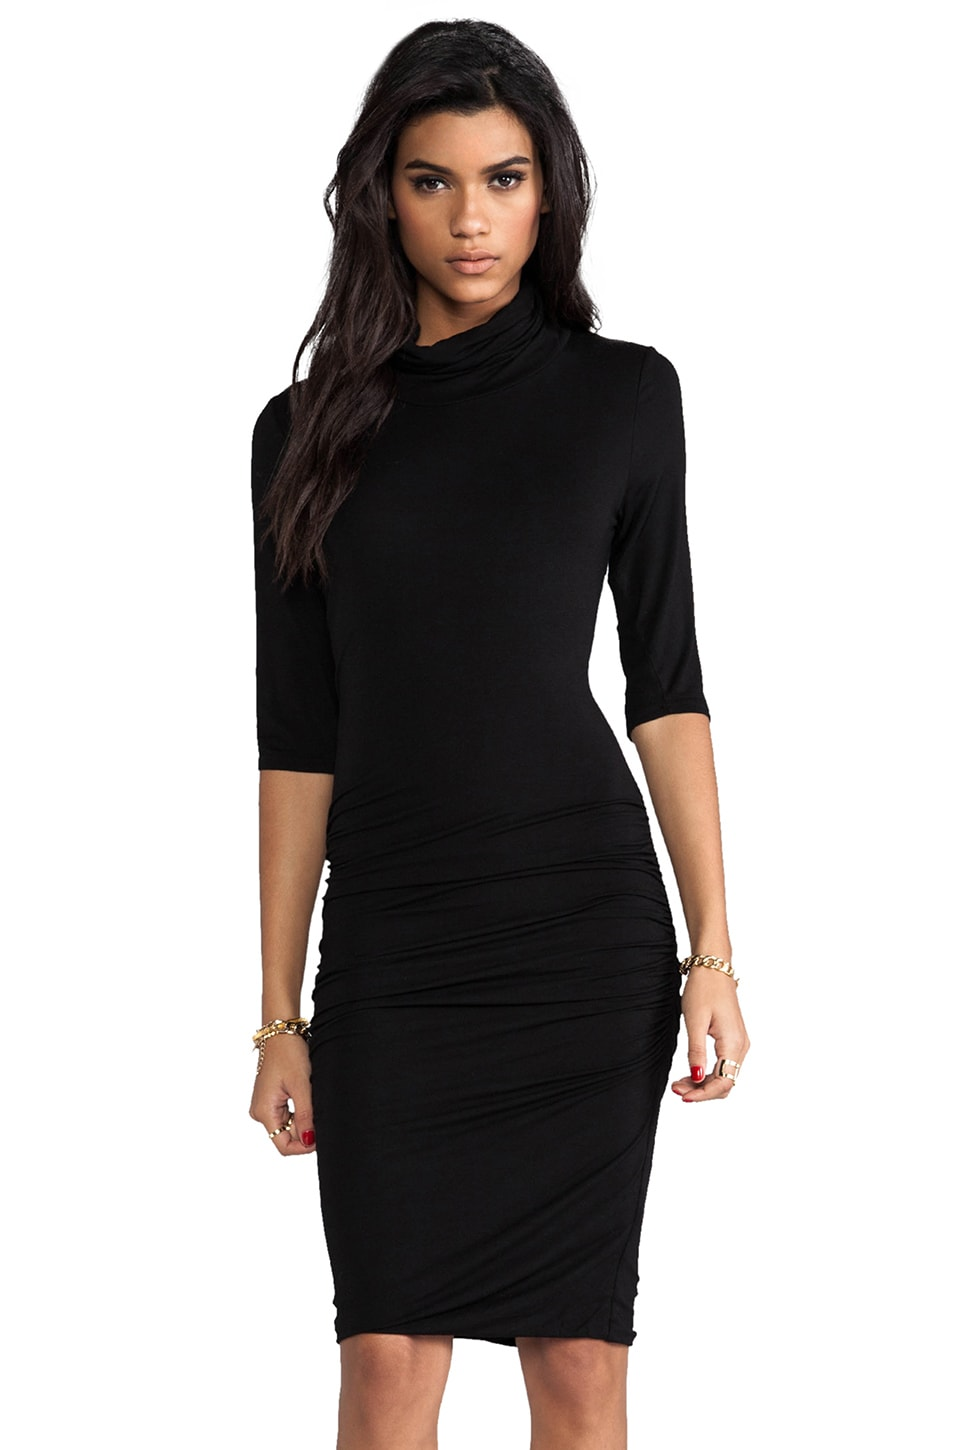 Bobi Long Sleeve Turtleneck Dress in Black